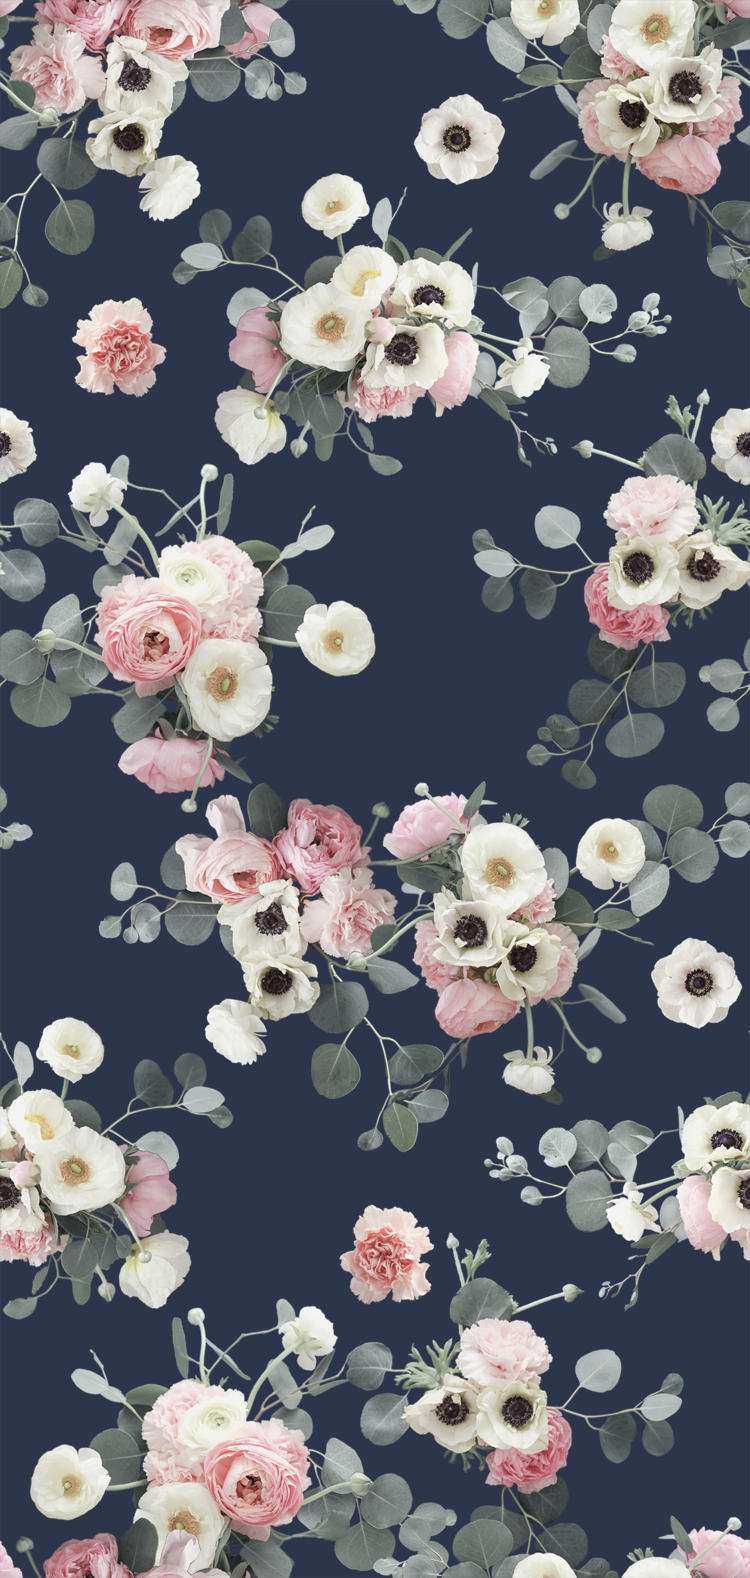 Floral Pattern Iphone Background